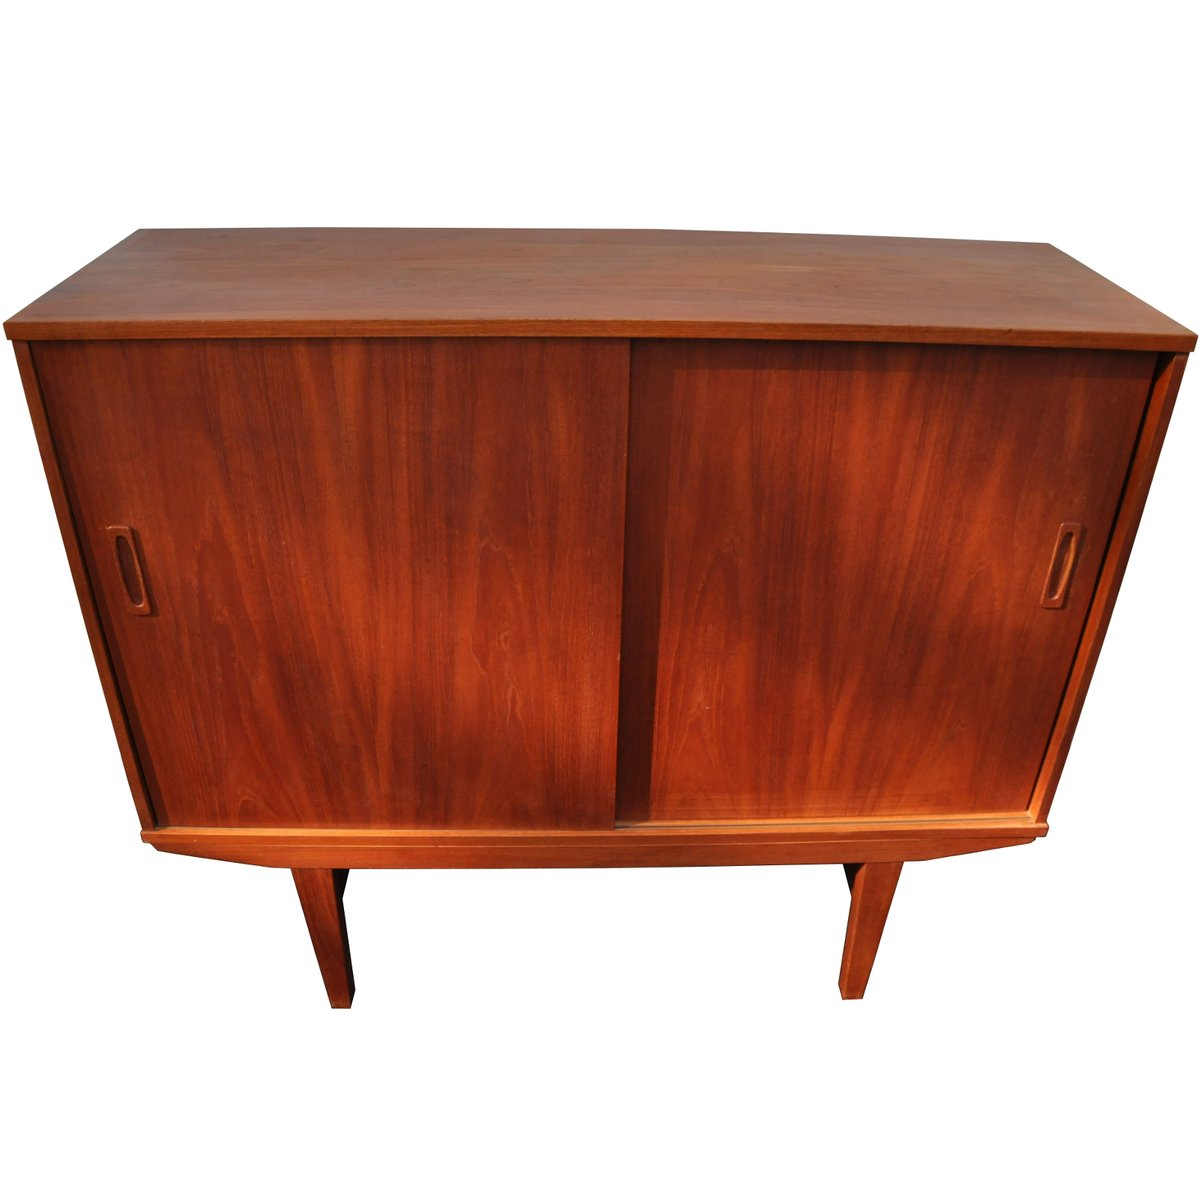 vintage danish highboard in teak 1960s for sale at pamono. Black Bedroom Furniture Sets. Home Design Ideas